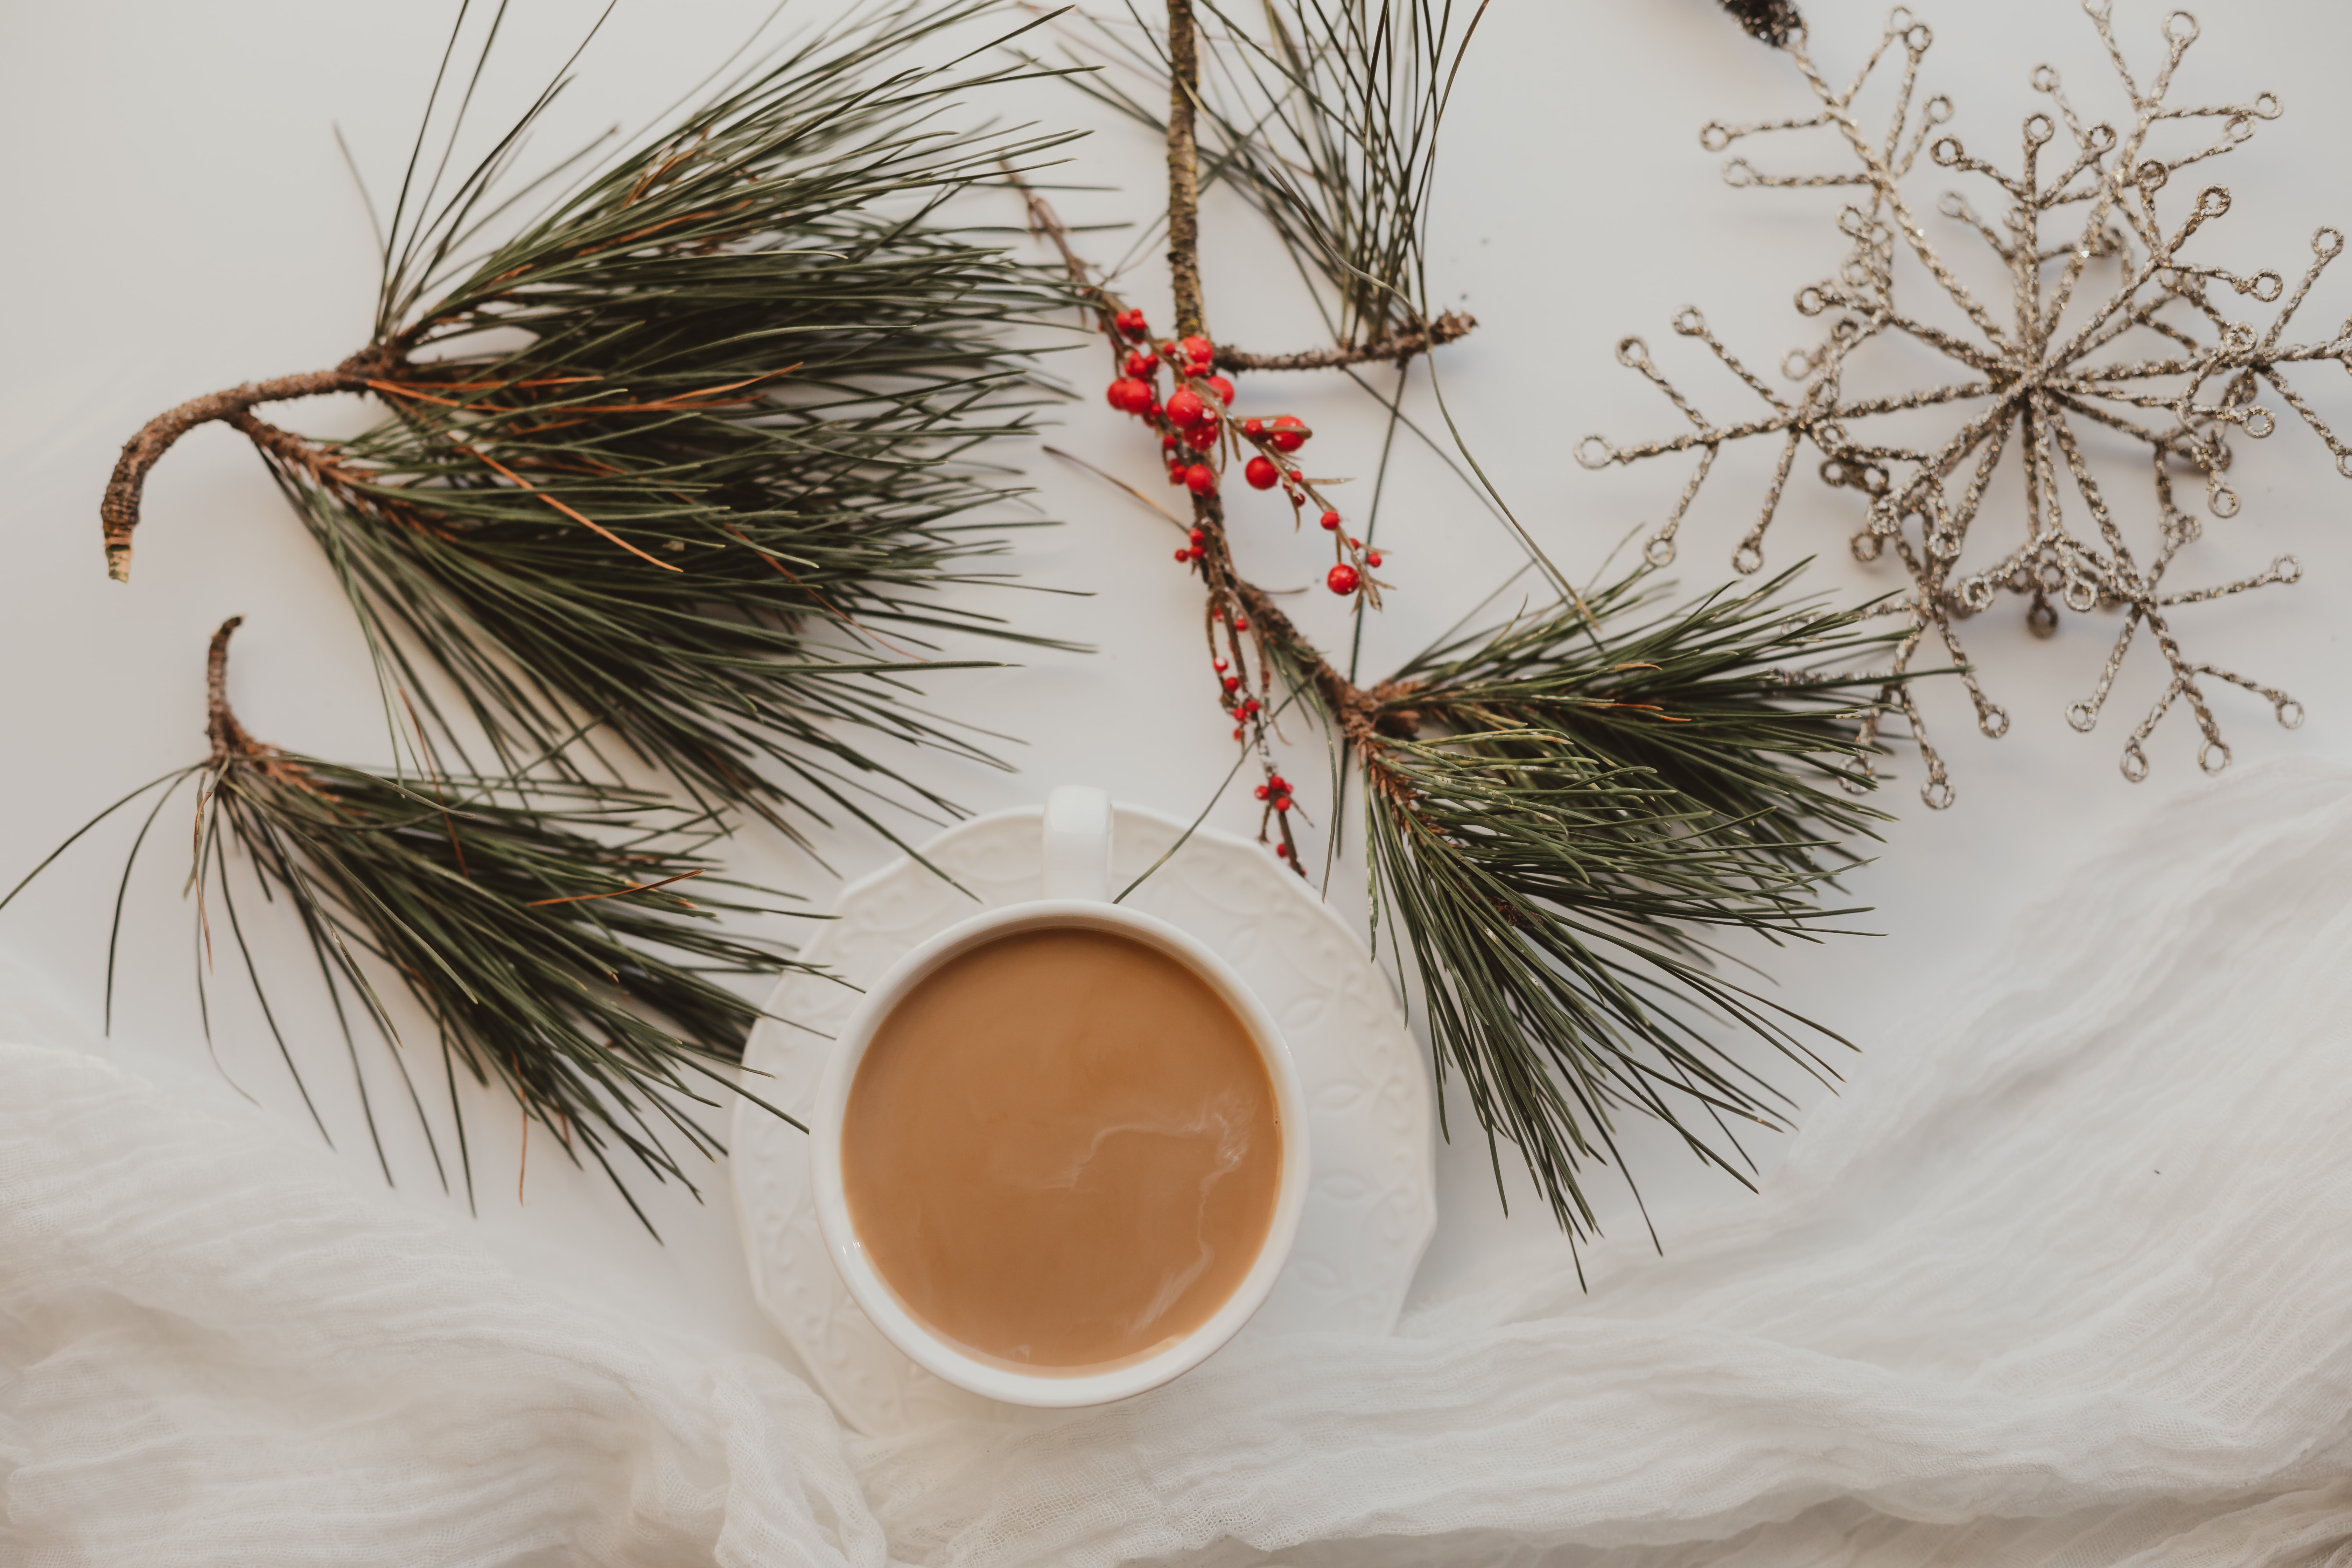 152175 download wallpaper Food, Cup, Coffee, Branches, Needles, Berries screensavers and pictures for free